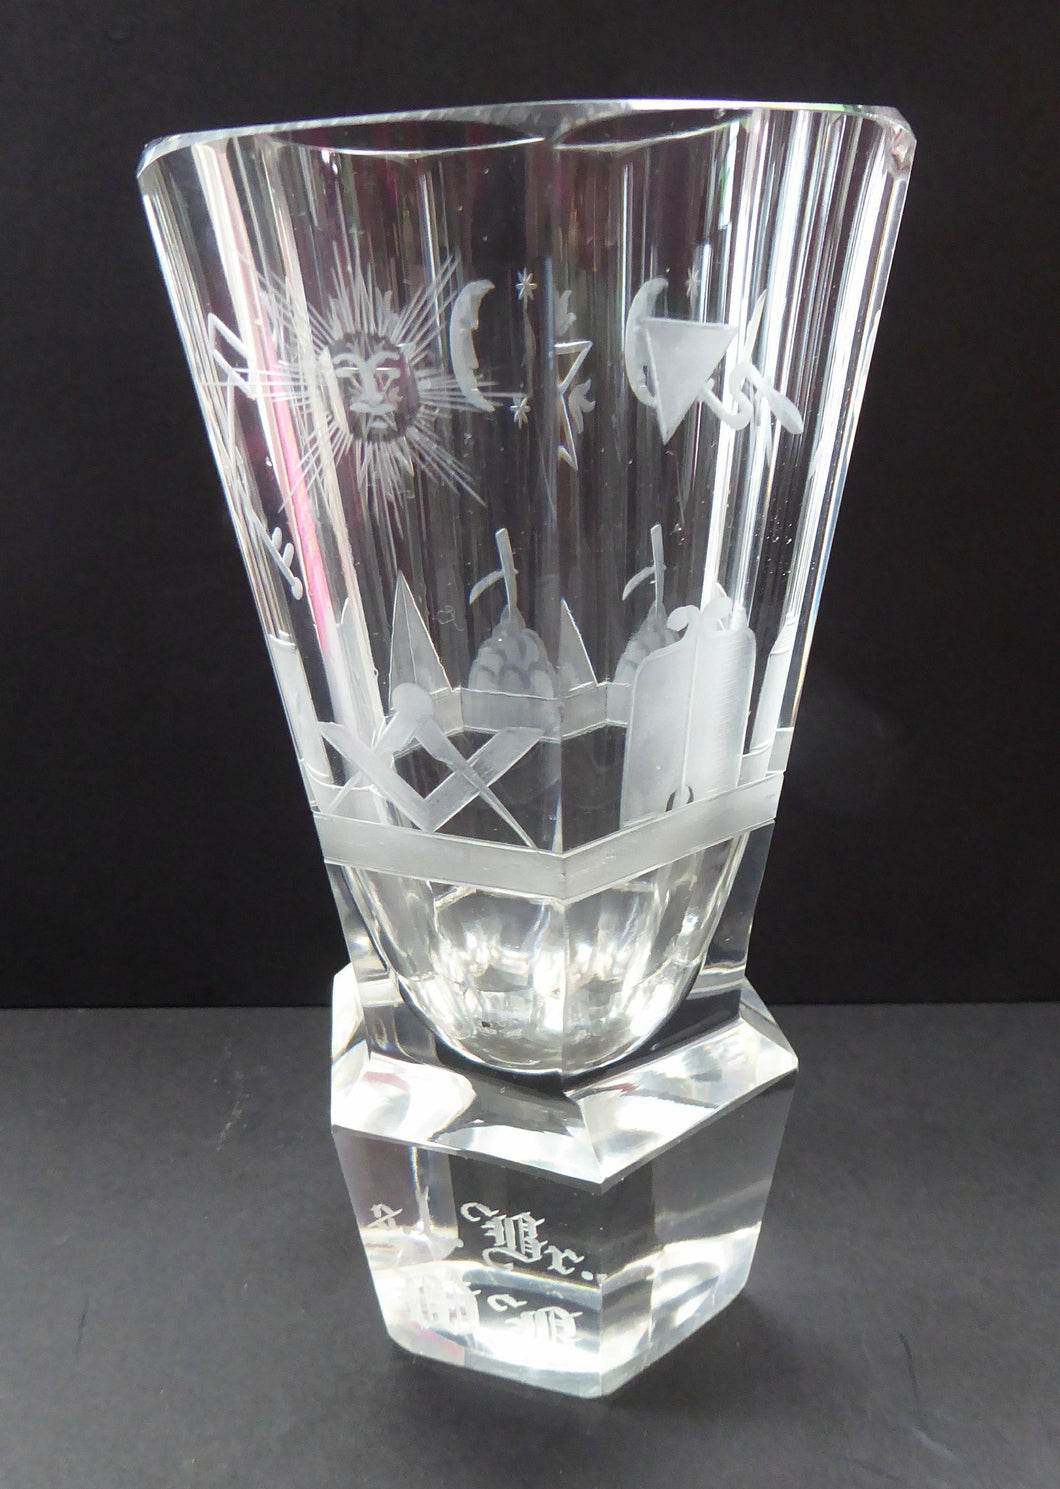 LARGE MASONIC Firing Glass - with Heavy Faceted Base and Fabulous Engraved Masonic Symbols: Sun, Pyramid, Dividers Etc